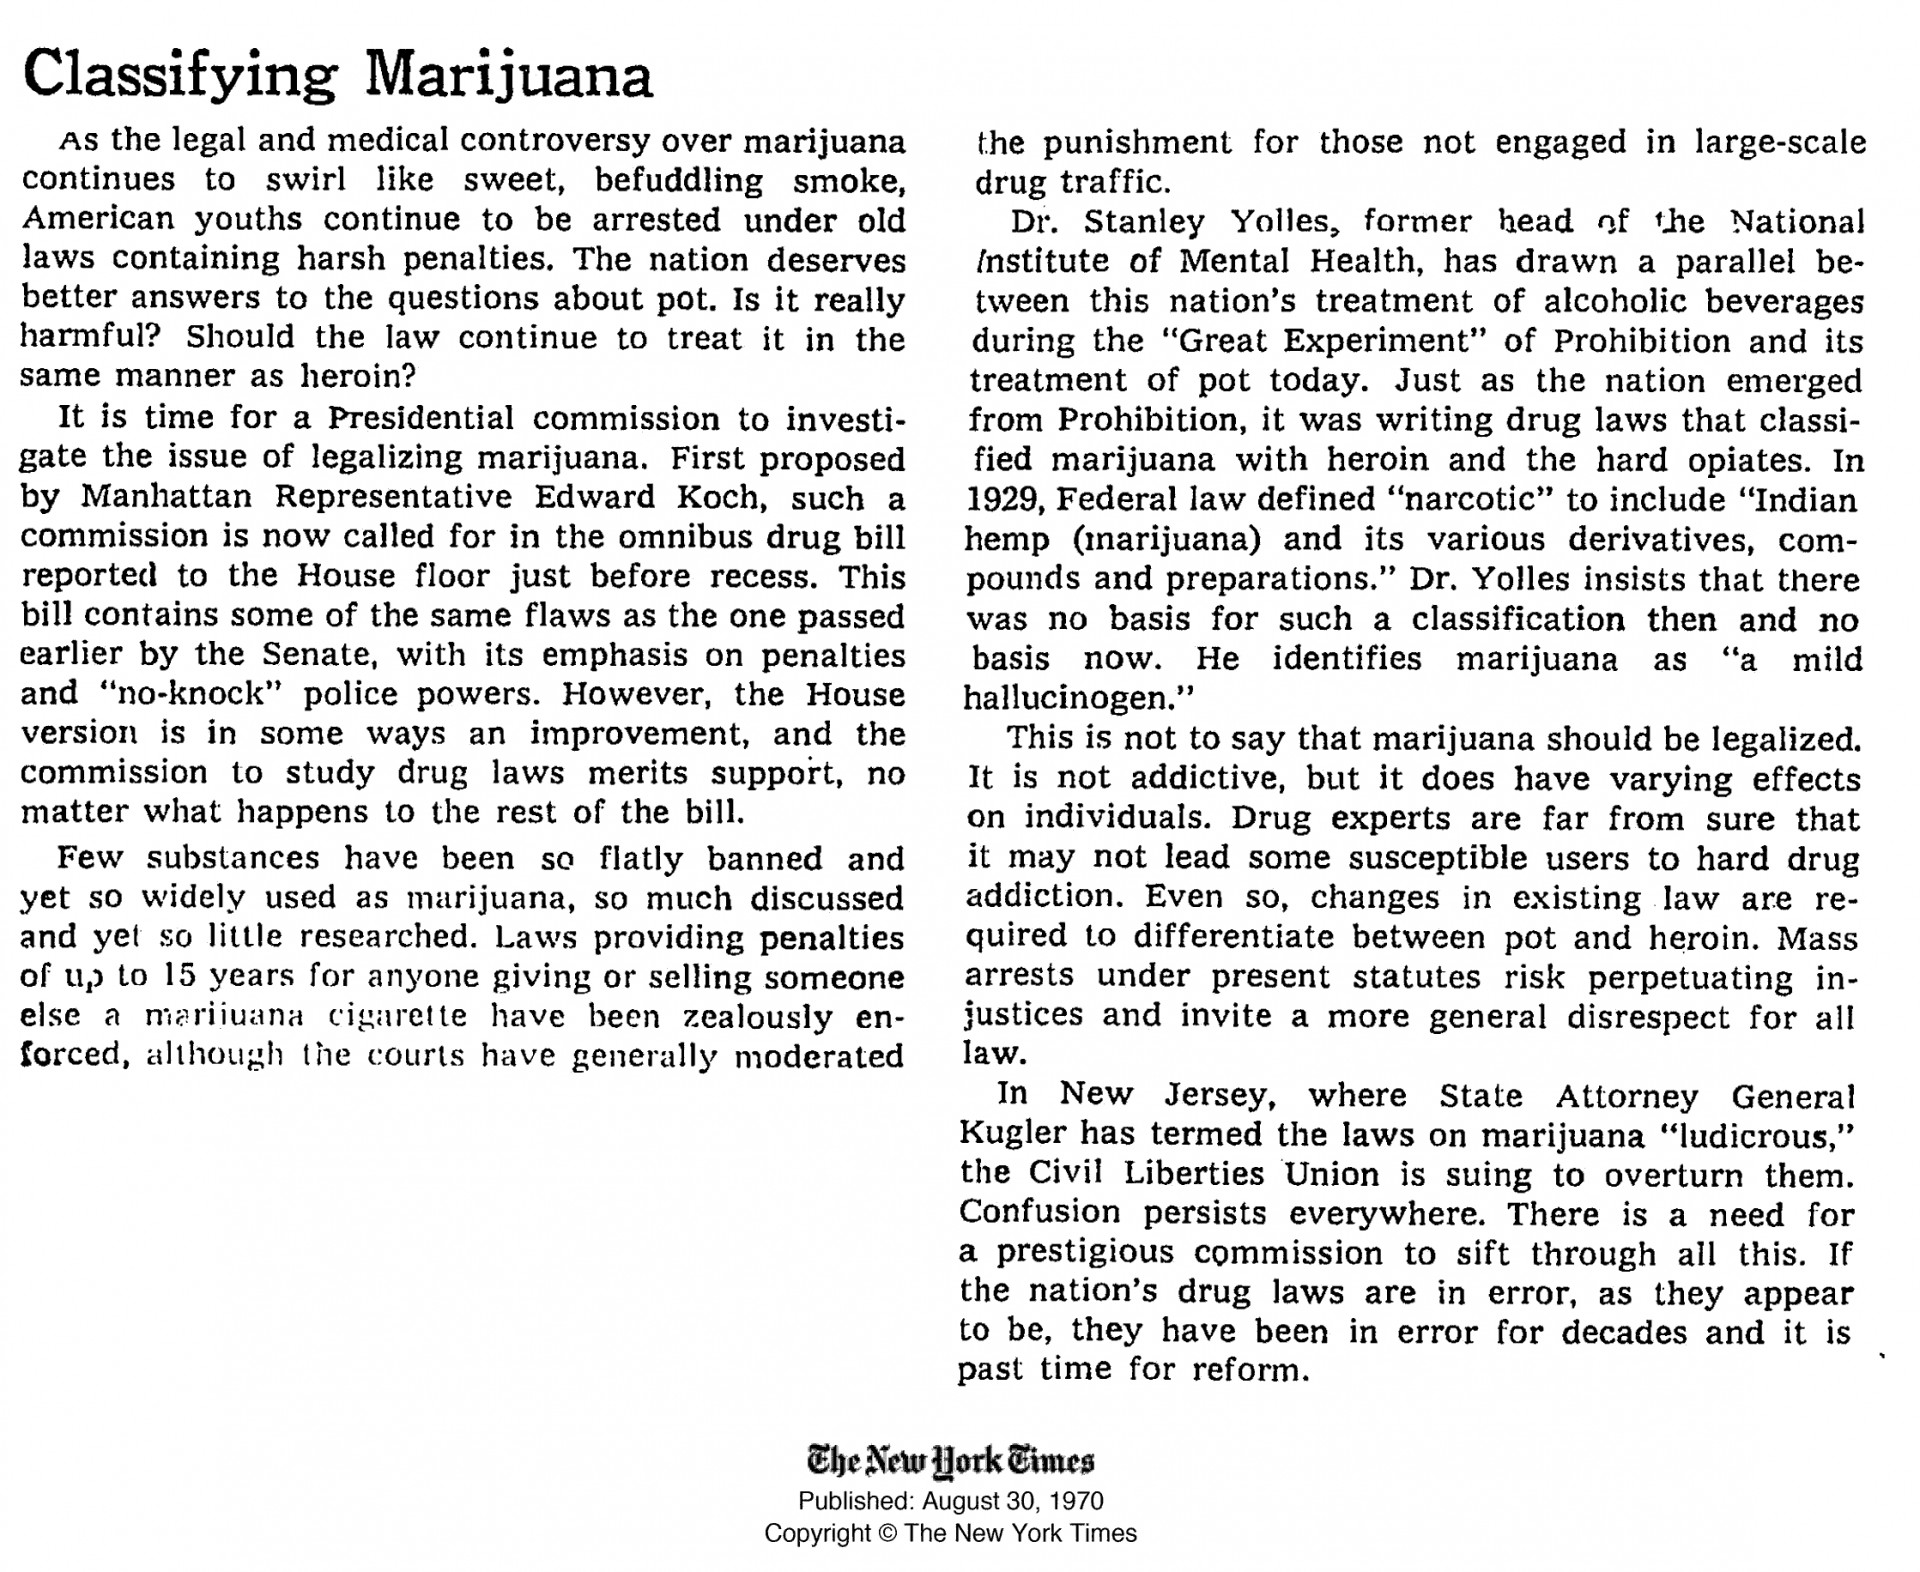 003 Essay Example High Time Classifying Marijuana August Breathtaking Topics Titles Outline 1920